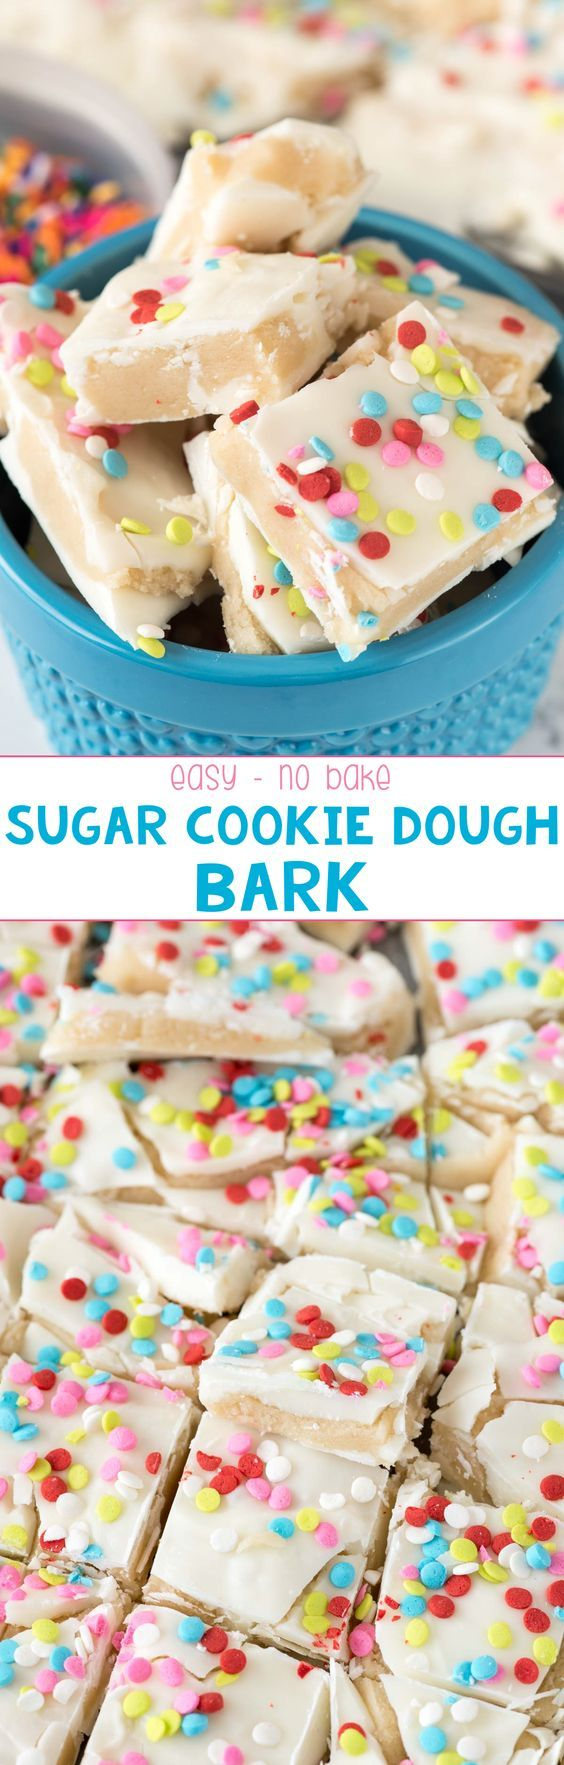 Sugar Cookie Dough Bark - this easy, no-bake, eggless sugar cookie dough is sandwiched between layers of white chocolate to create a candy bark! Everyone LOVES this candy!